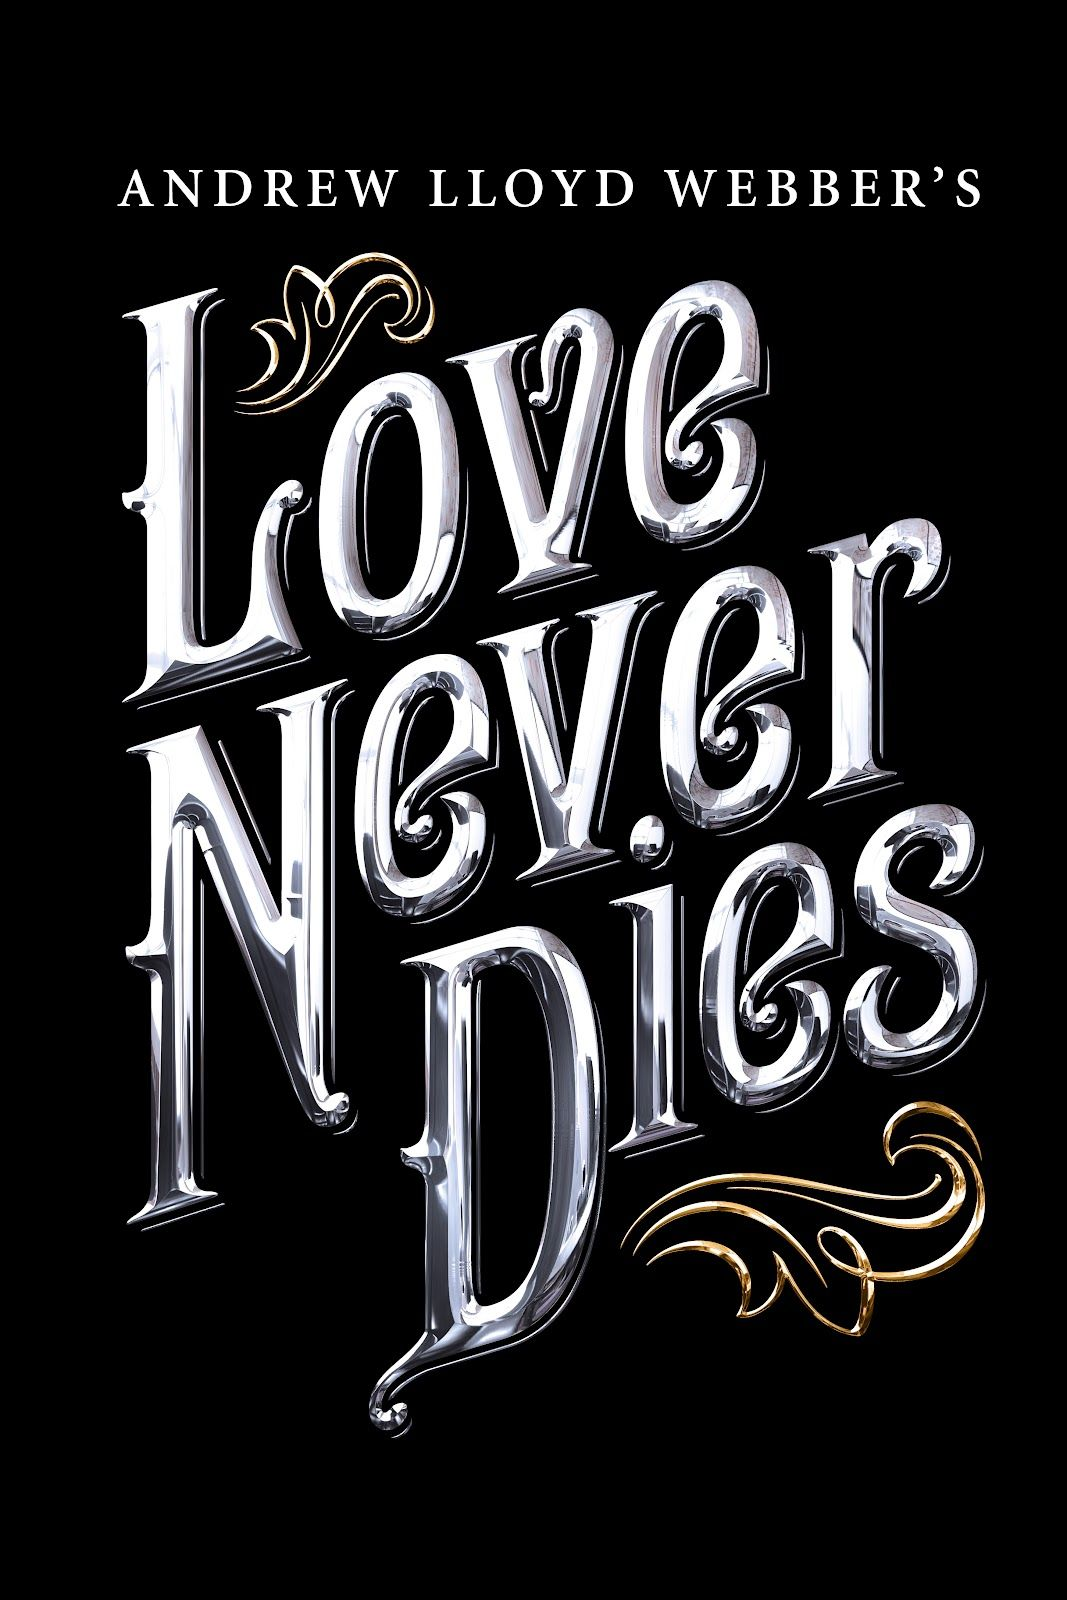 Someday I Ll See All The Broadway Shows I Love And Have Posters Of Them In My Recreation Room Phantom Of The Opera Love Never Dies Musical Love Never Dies